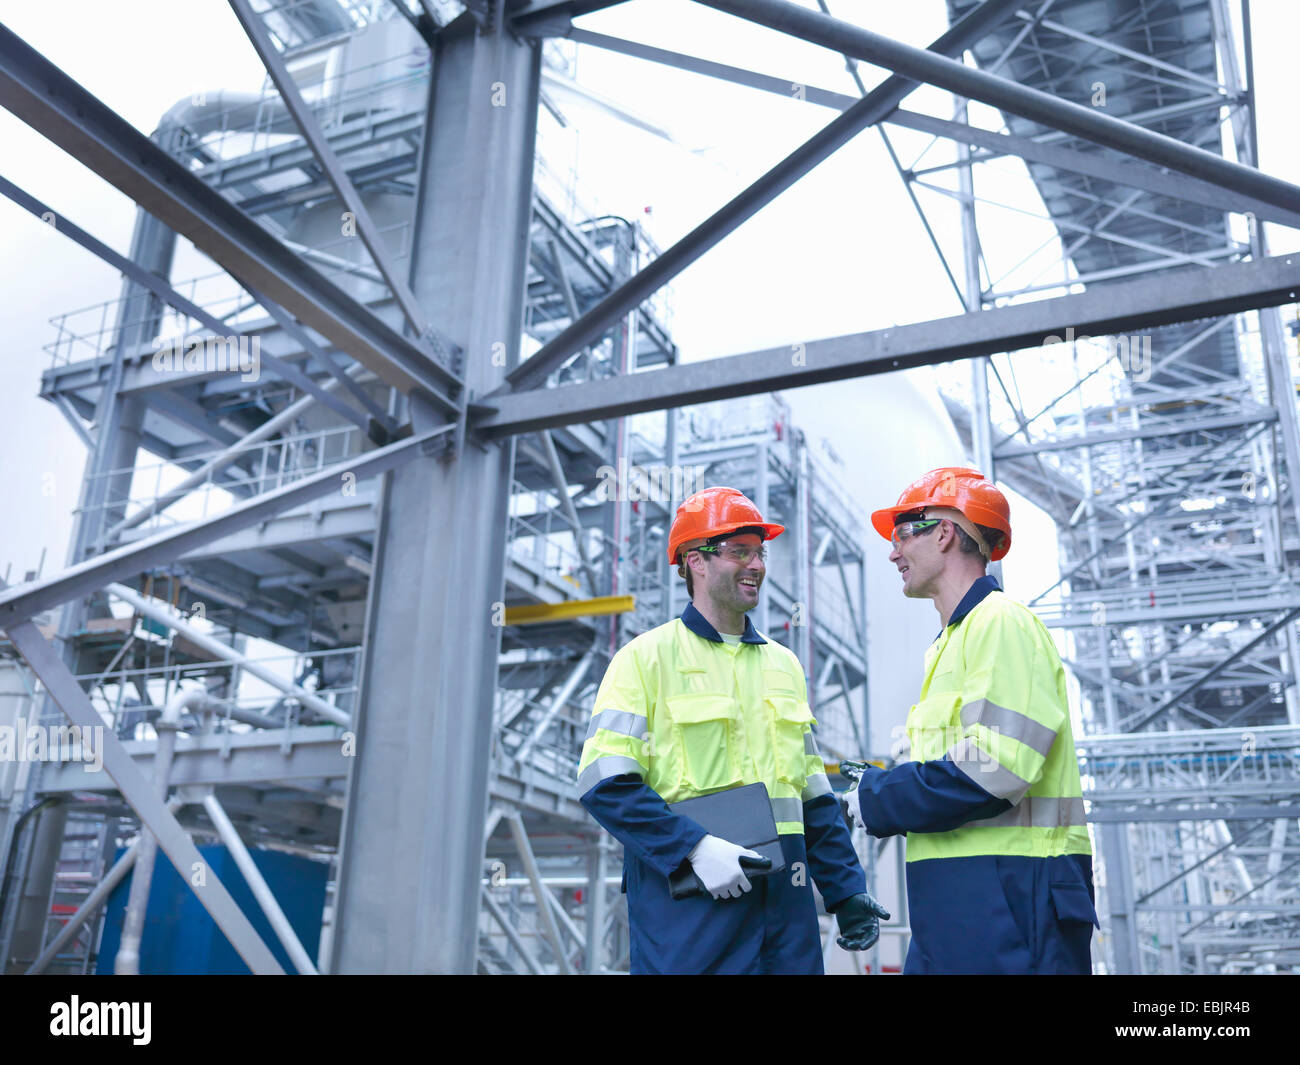 Workers in discussion in biomass facility - Stock Image